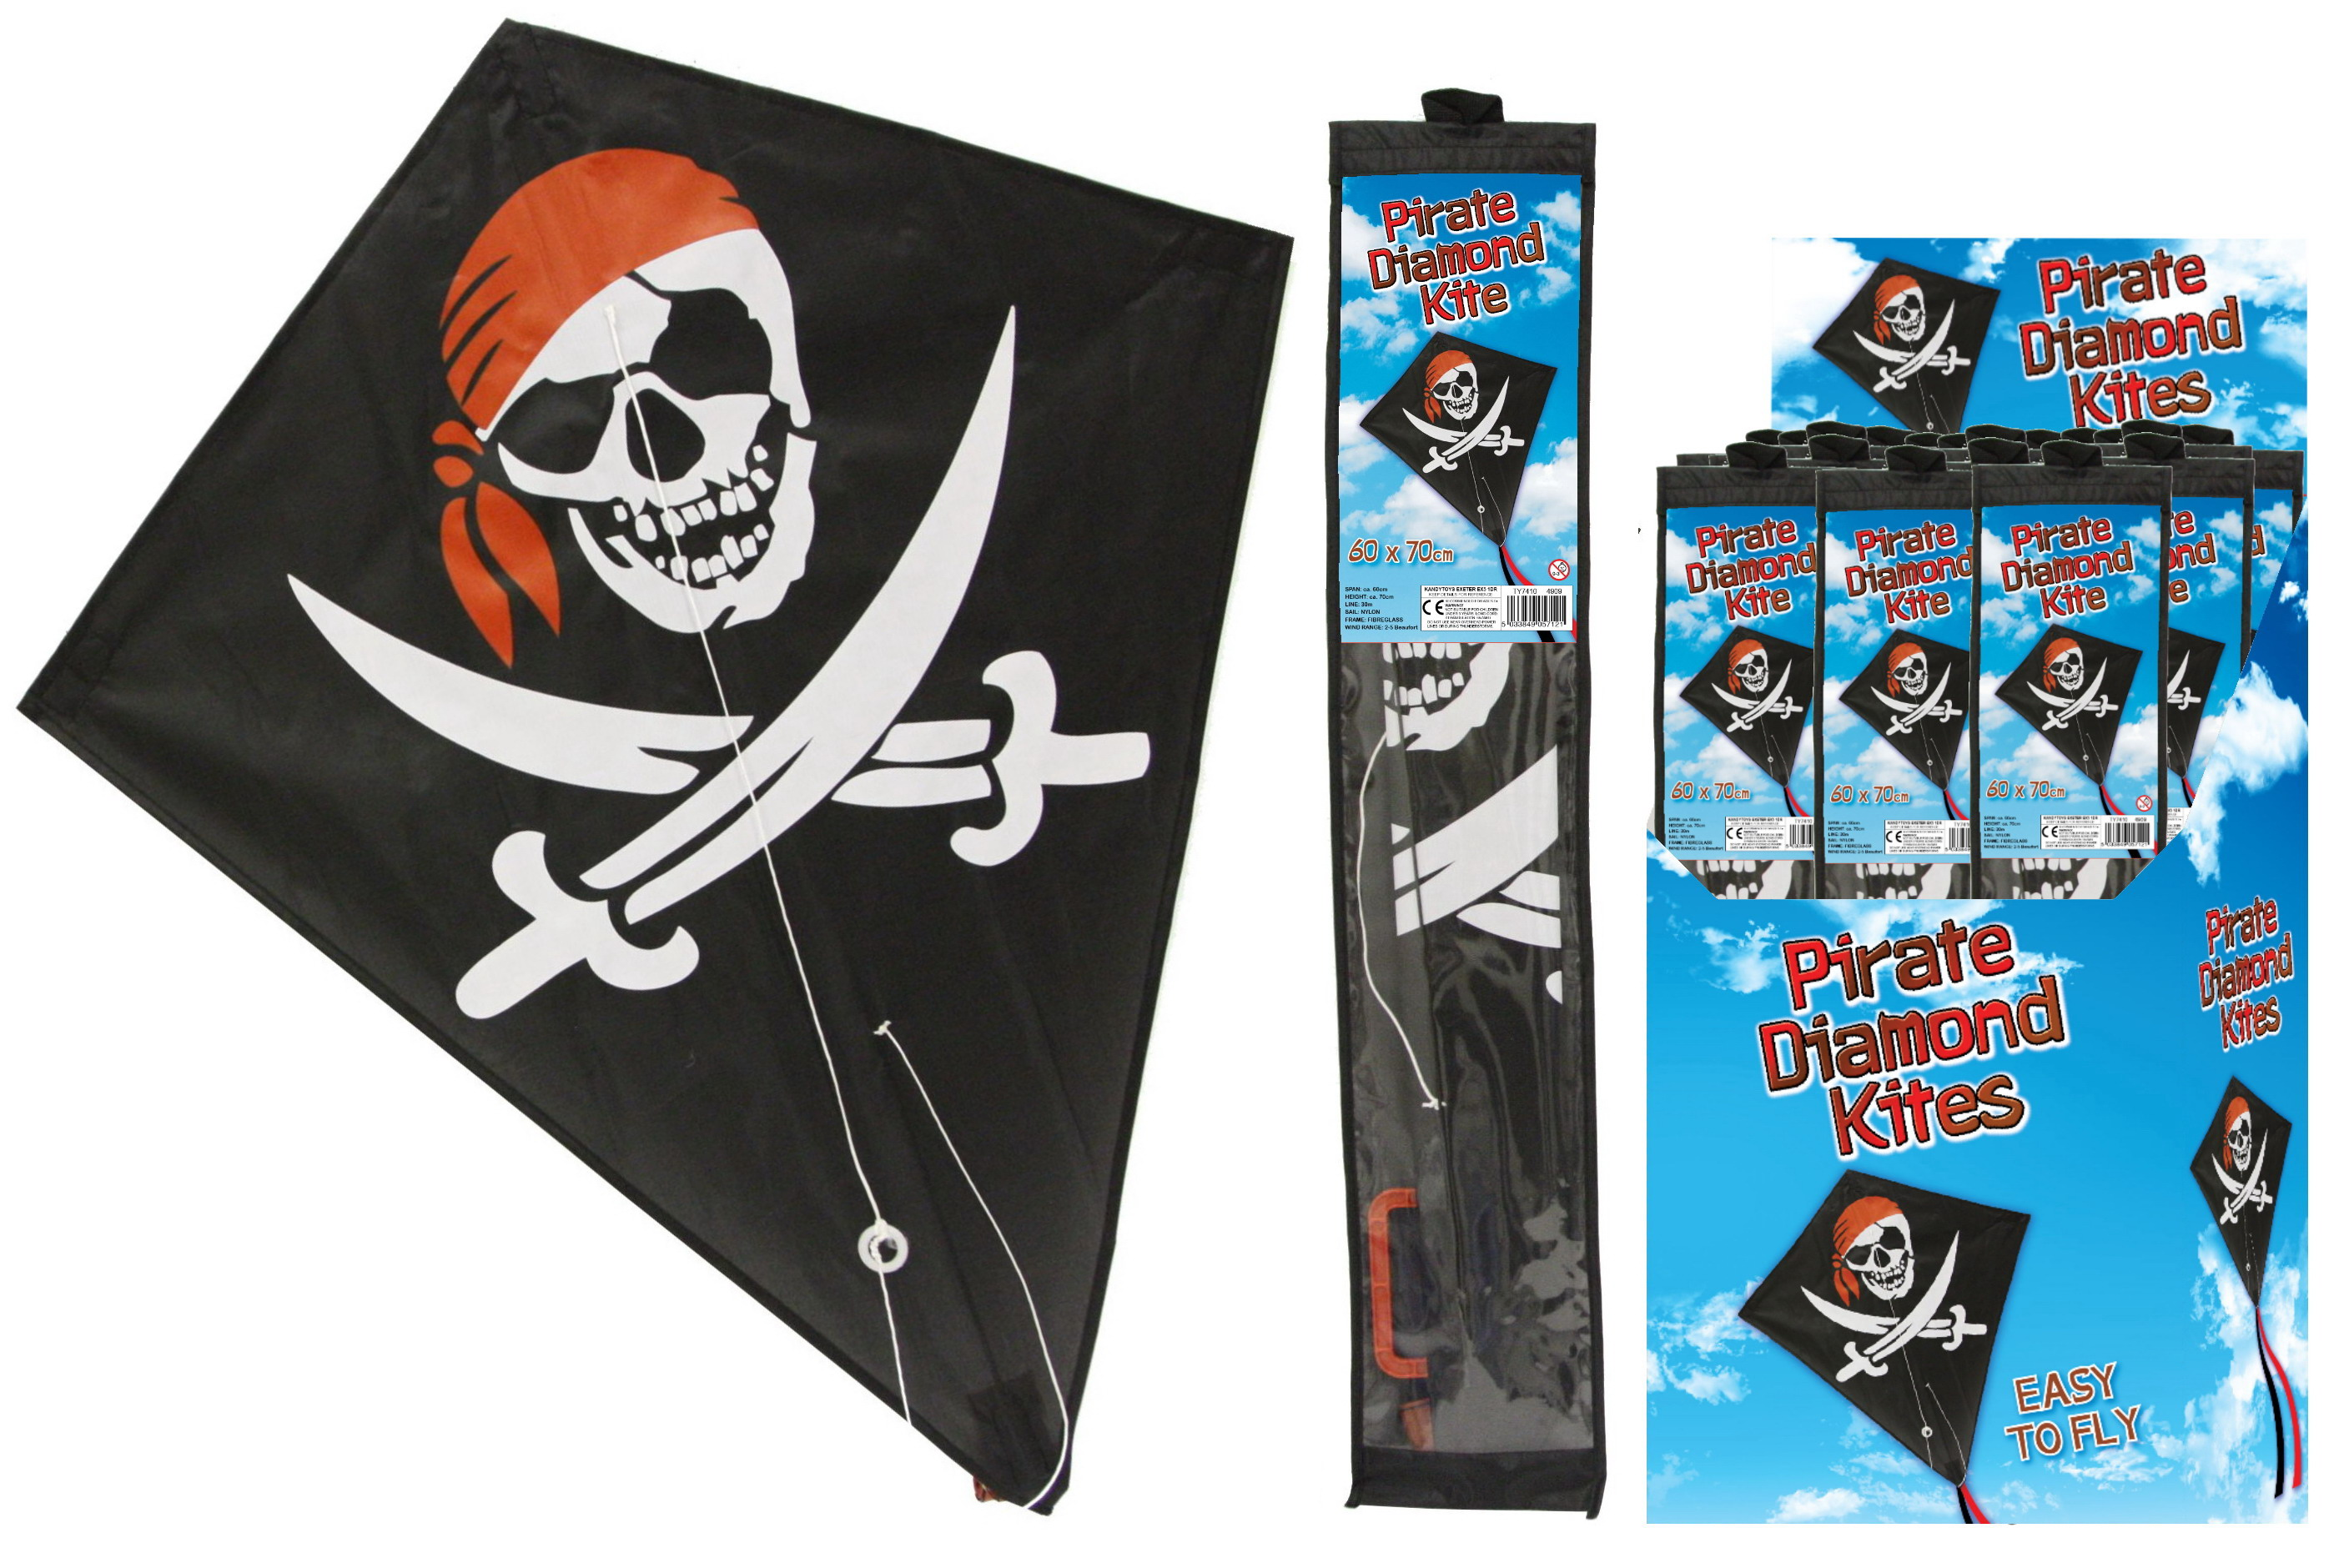 Pirate Diamond Kite 60cm x 70cm In Display Box